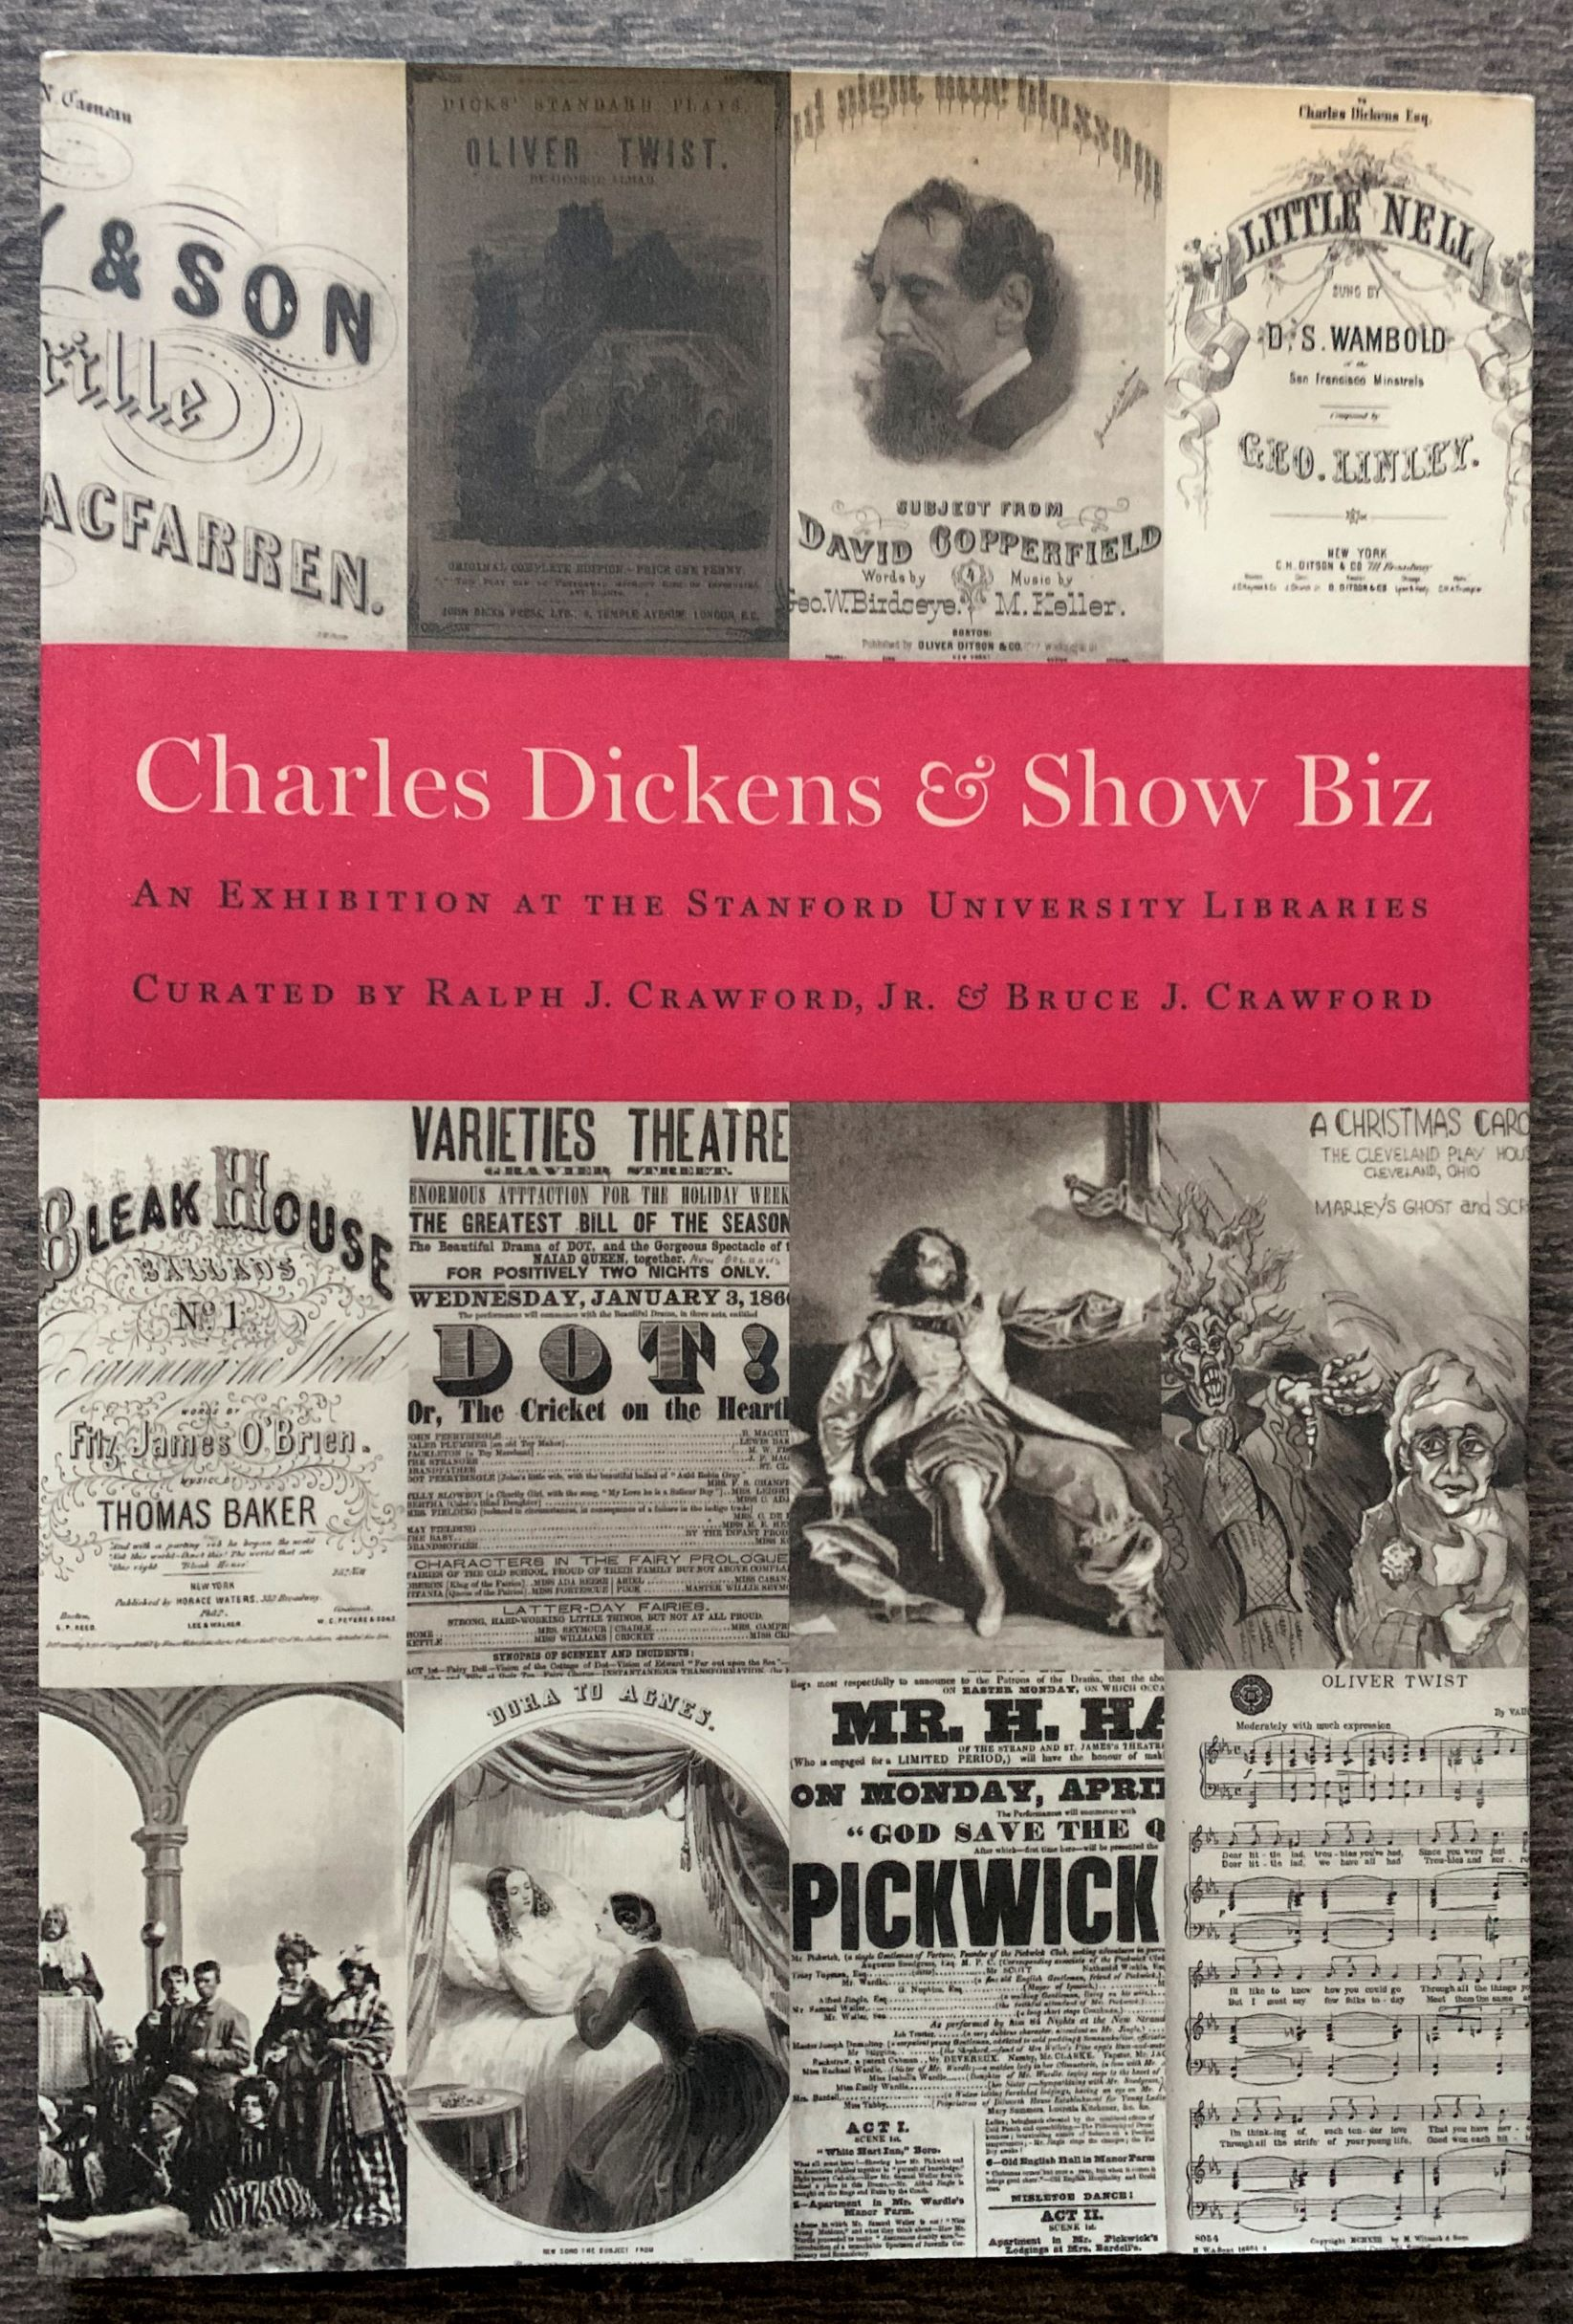 Image for Charles Dickens And Show Biz. An Exhibition at the Stanford University Libraries.